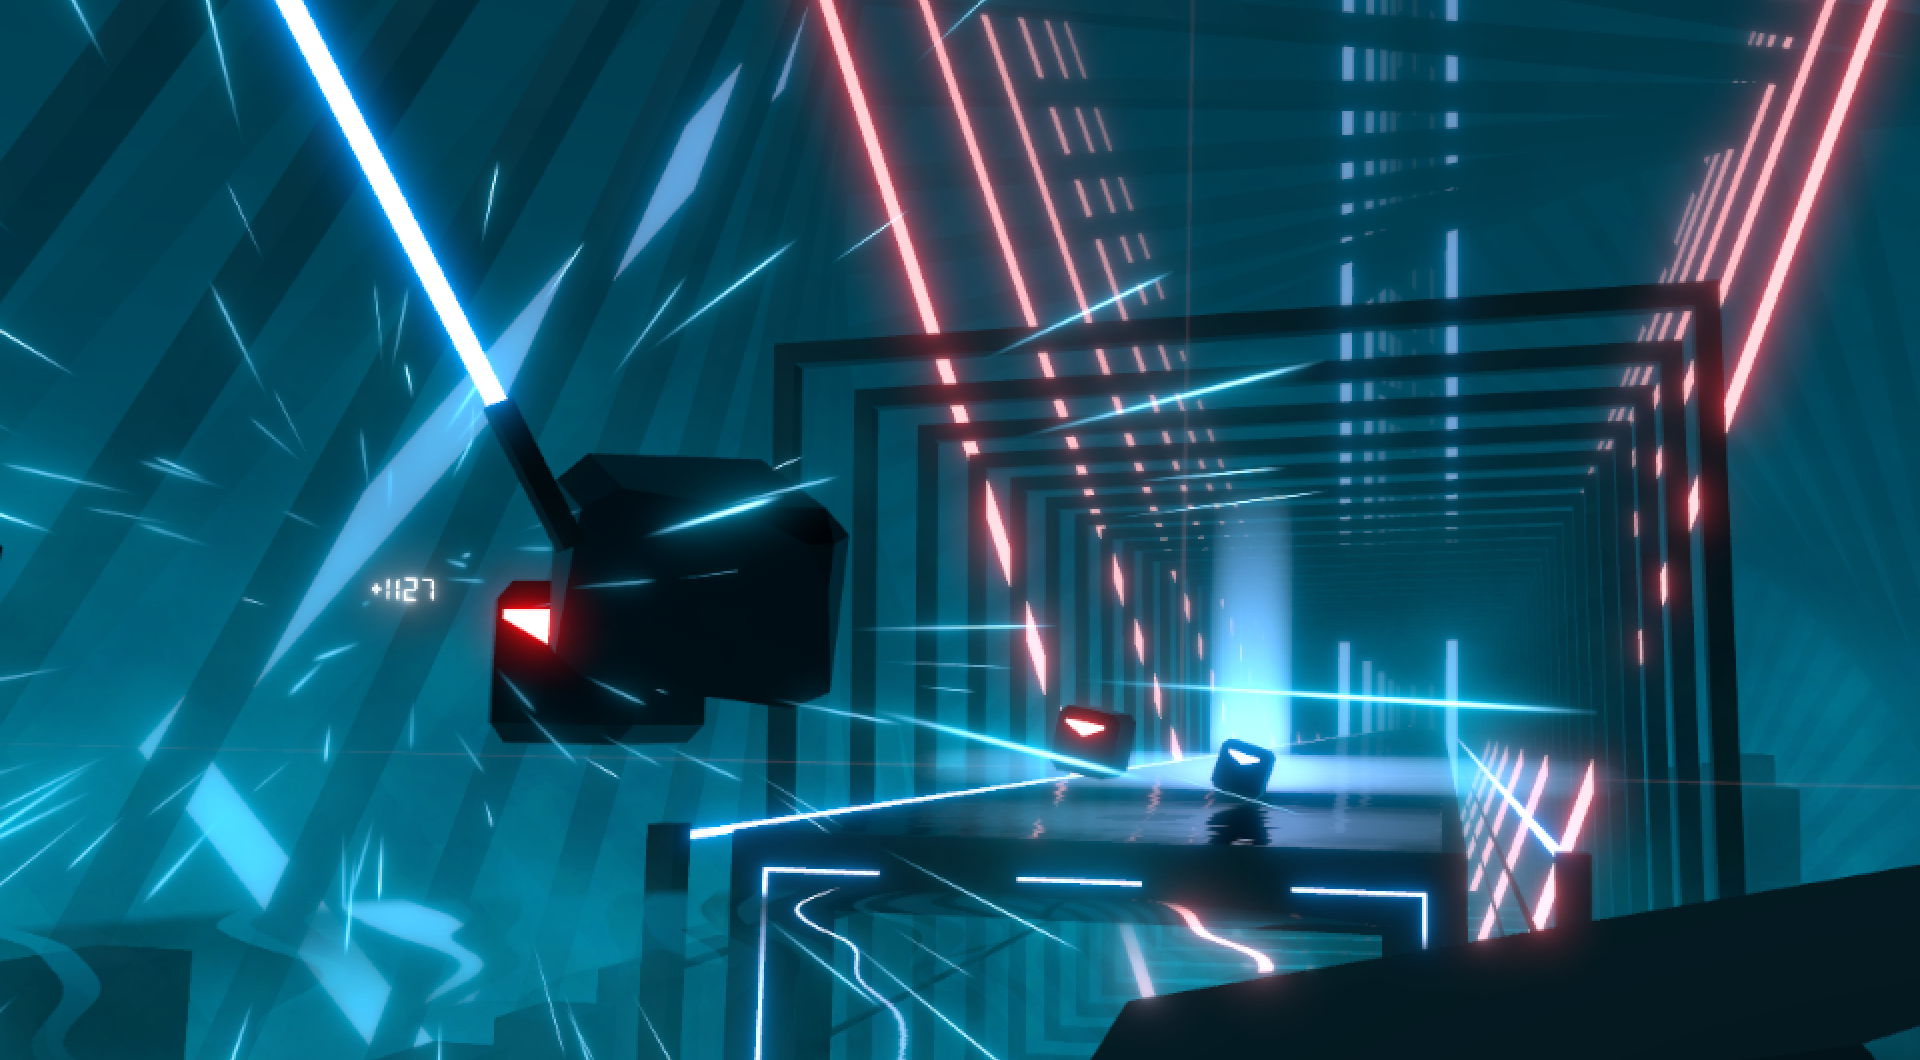 Beat Saber makers celebrate birthday with early build for free